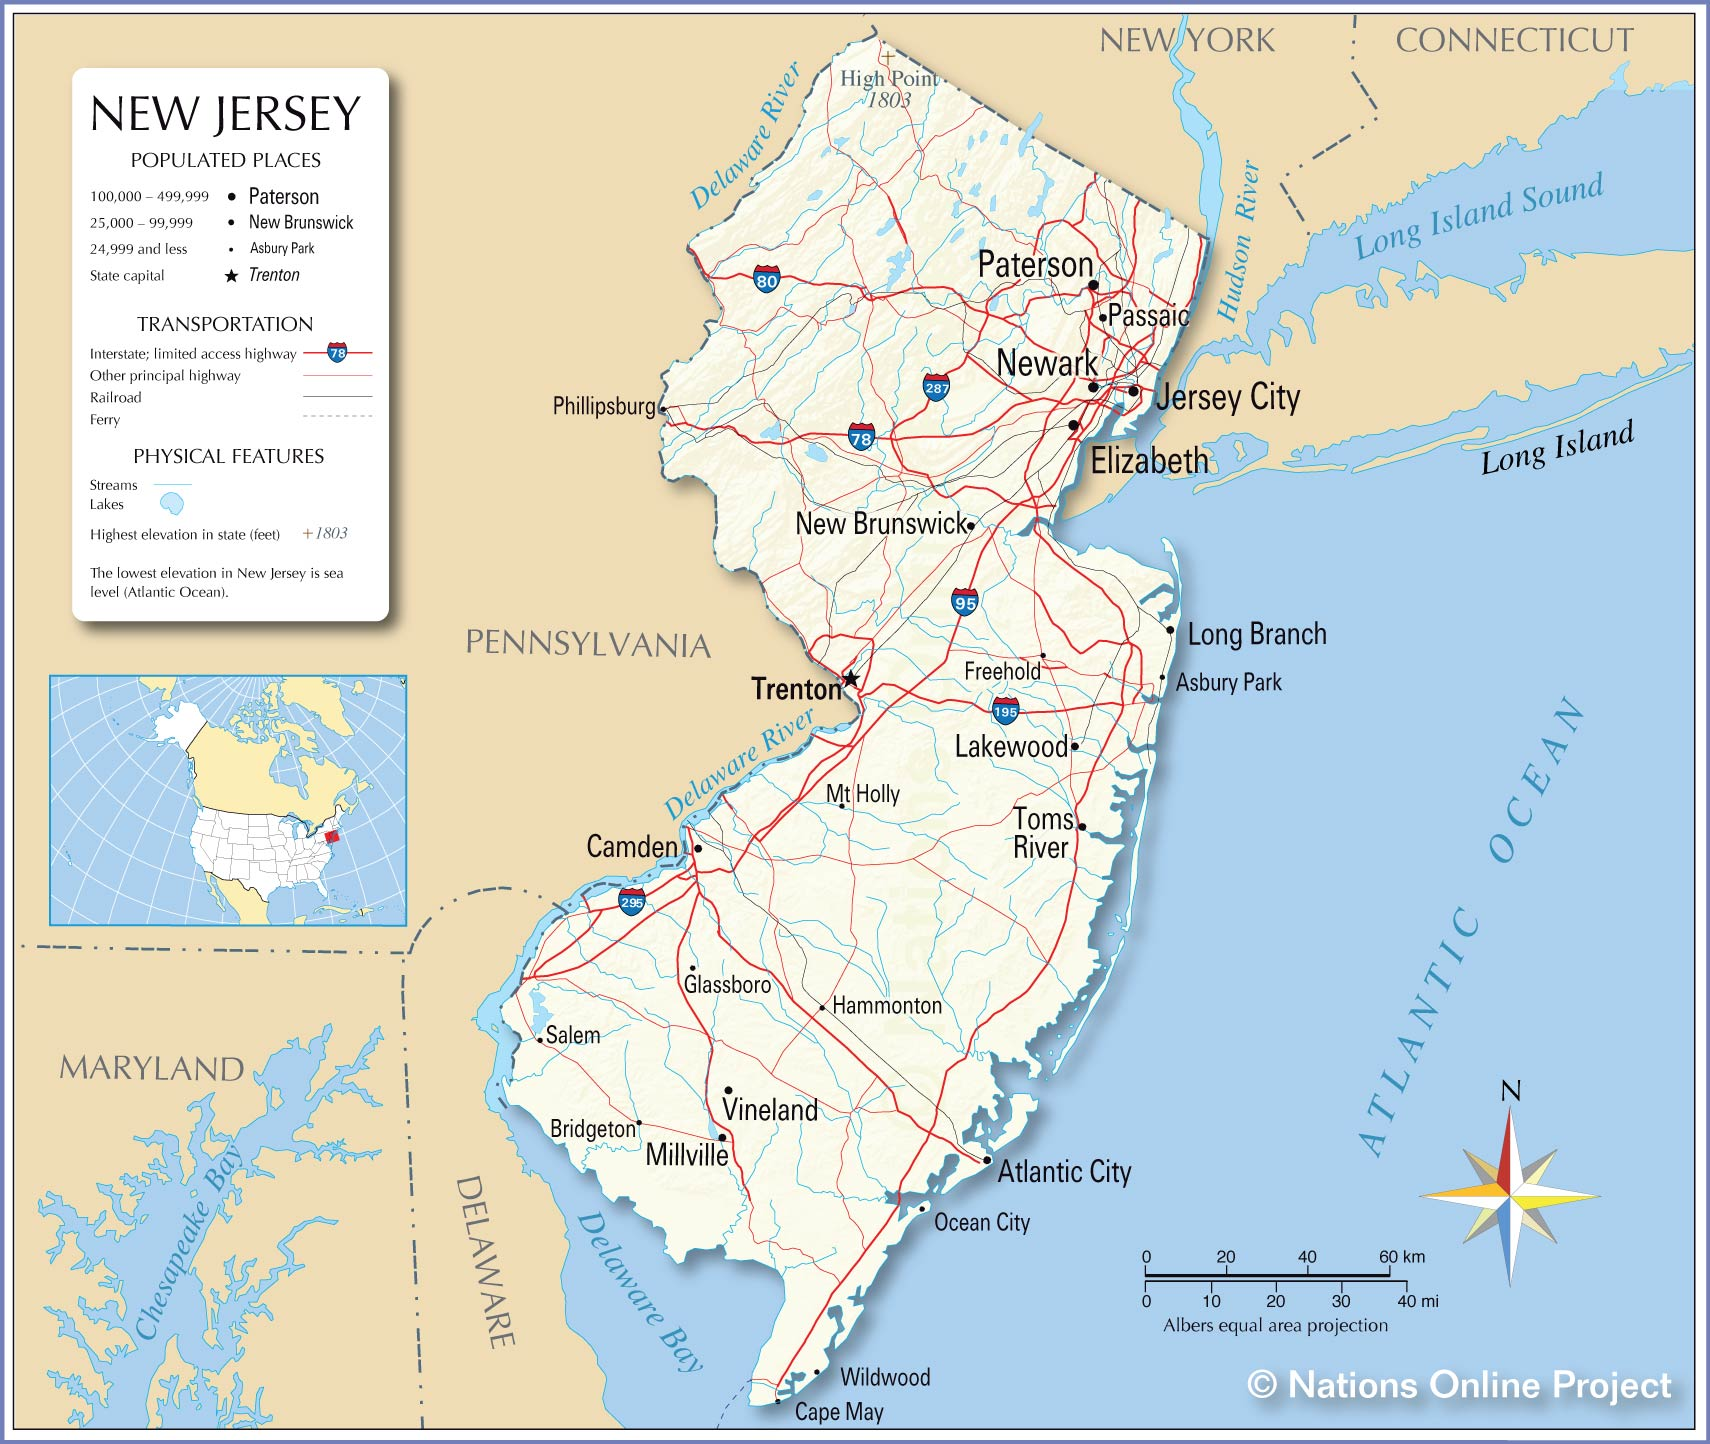 union lake nj map Map Of The State Of New Jersey Usa Nations Online Project union lake nj map